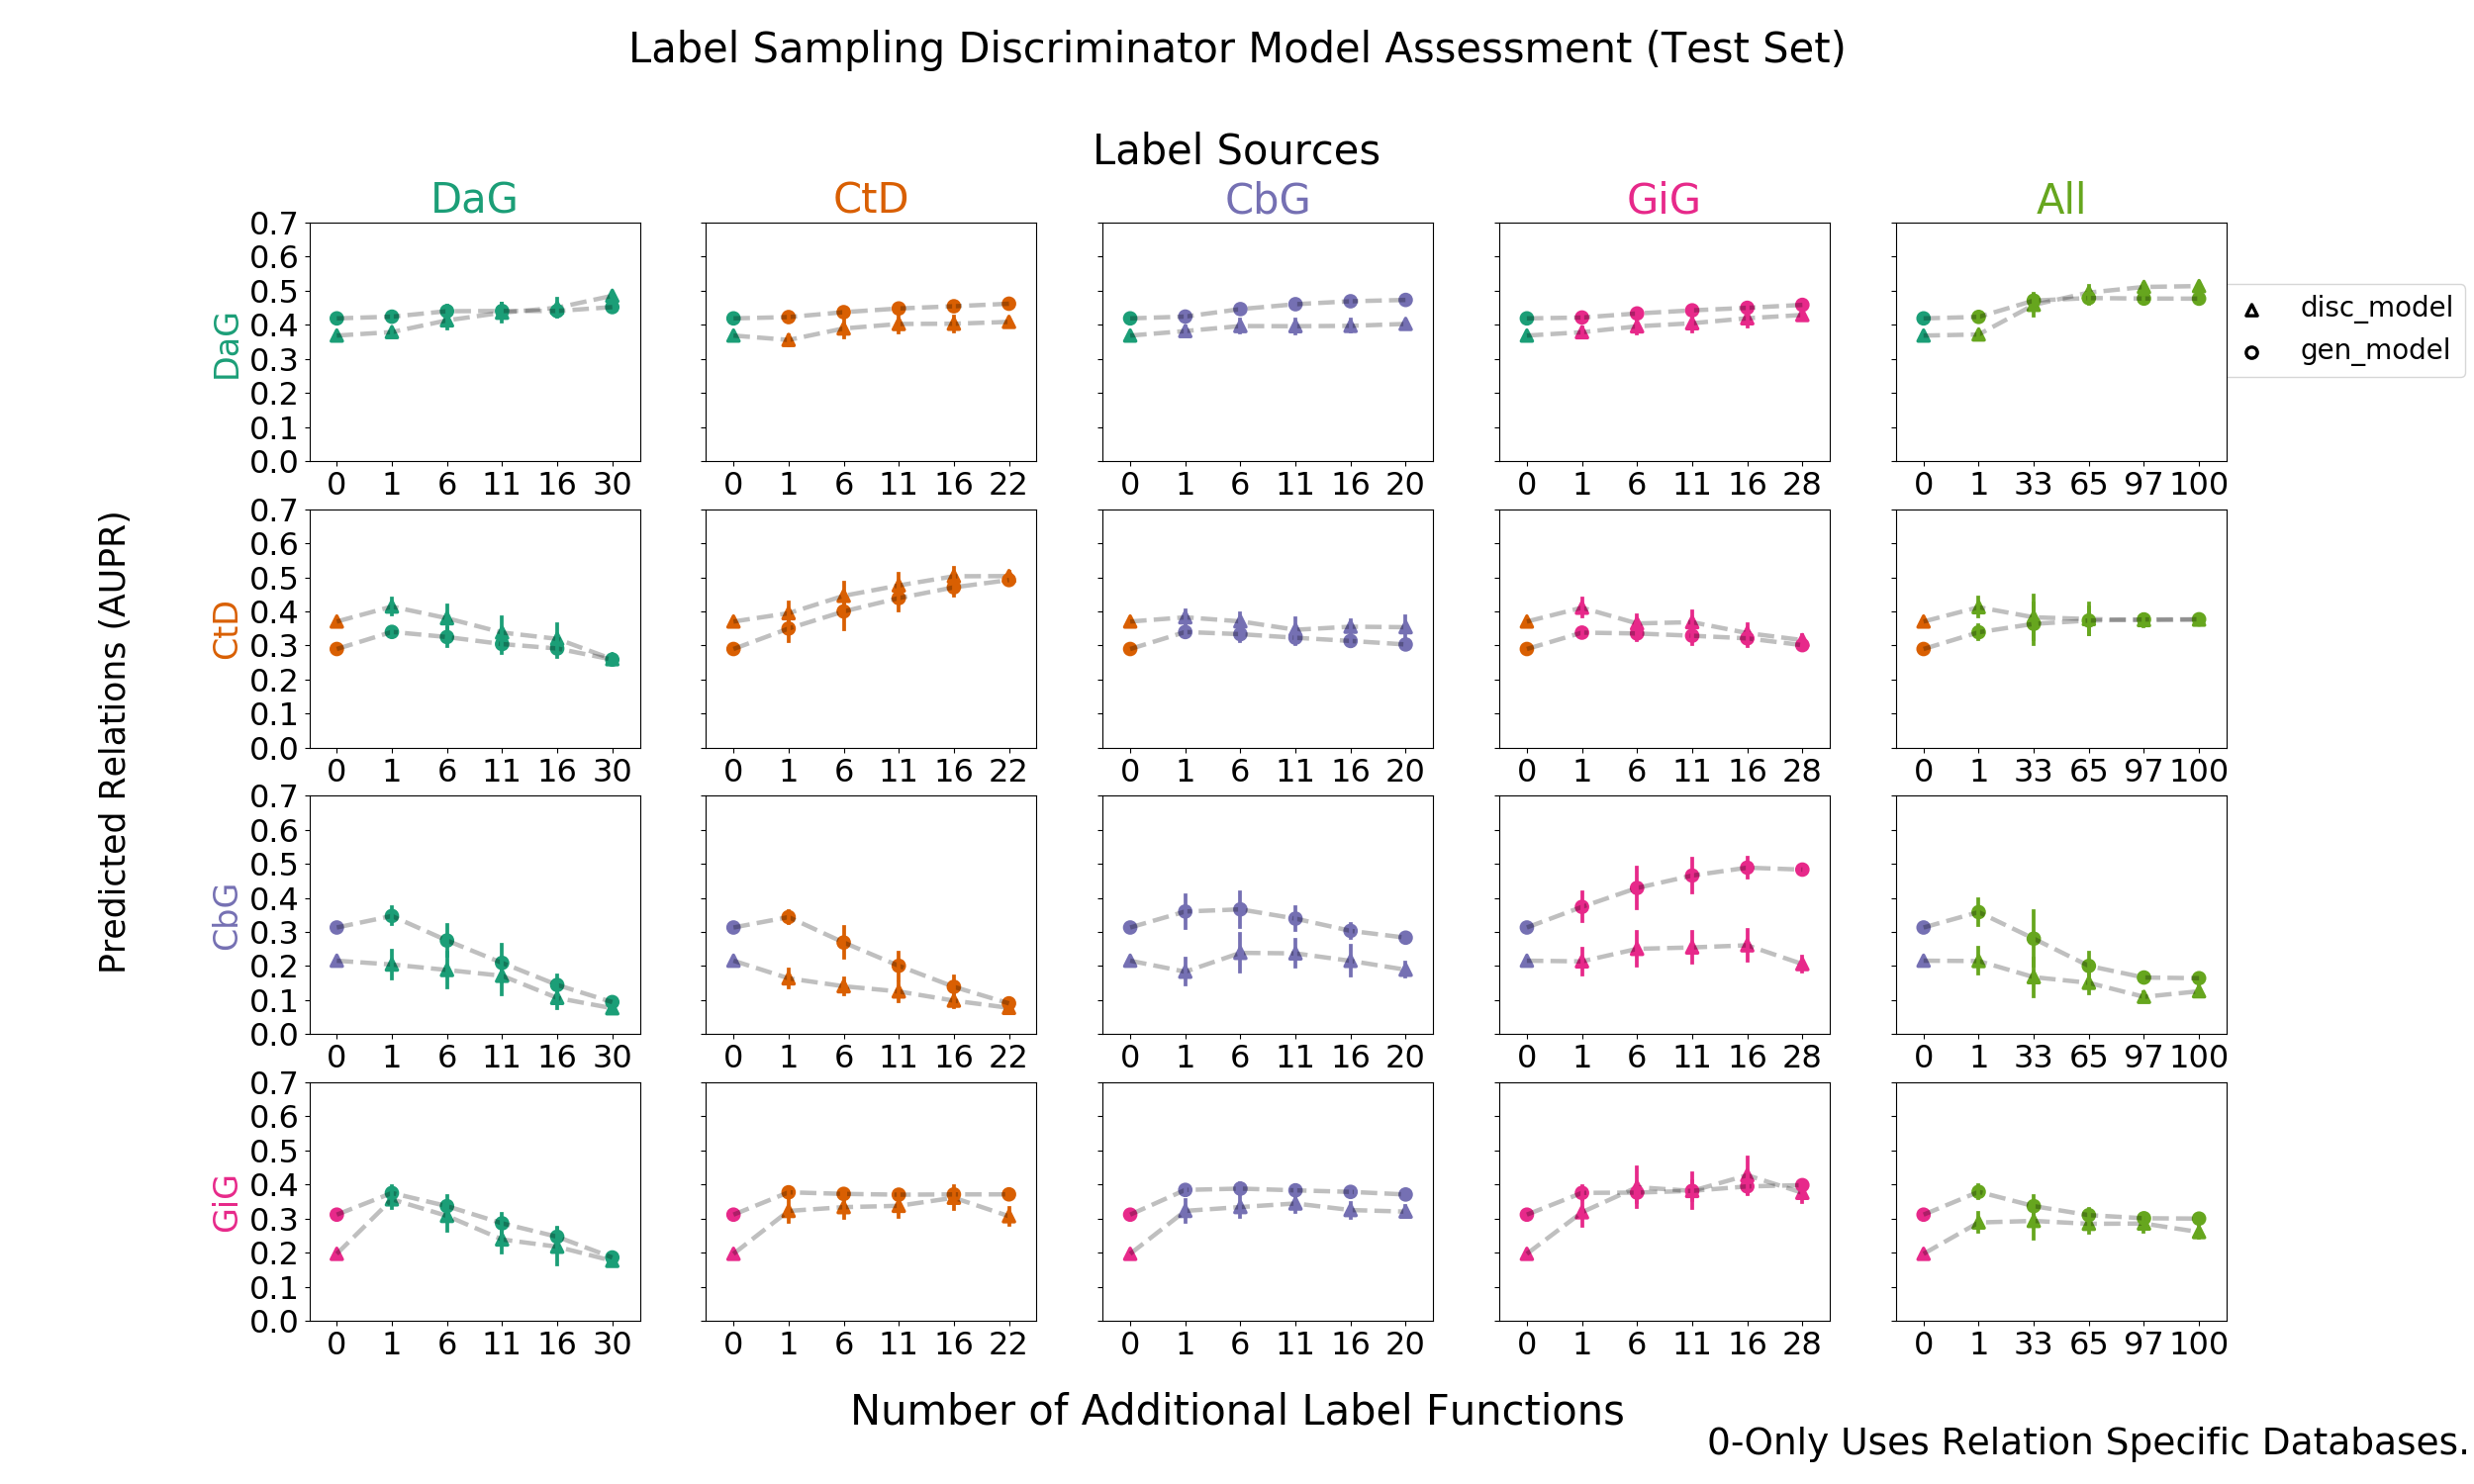 Figure 8: Grid of AUPR scores for each discriminative model trained using generated labels from the generative models. The rows depict the edge type each model is trying to predict and the columns are the edge type specific sources from which each label function was sampled. For example, the top-left most square depicts the discriminator model predicting DaG sentences, while randomly sampling label functions designed to predict the DaG relationship. The error bars over the points represents the standard deviation between sampled runs. The square towards the right depicts the discriminative model predicting DaG sentences, while randomly sampling label functions designed to predict the CtD relationship. This pattern continues filling out the rest of the grid. The right most column consists of pooling every relationship specific label function and proceeding as above.